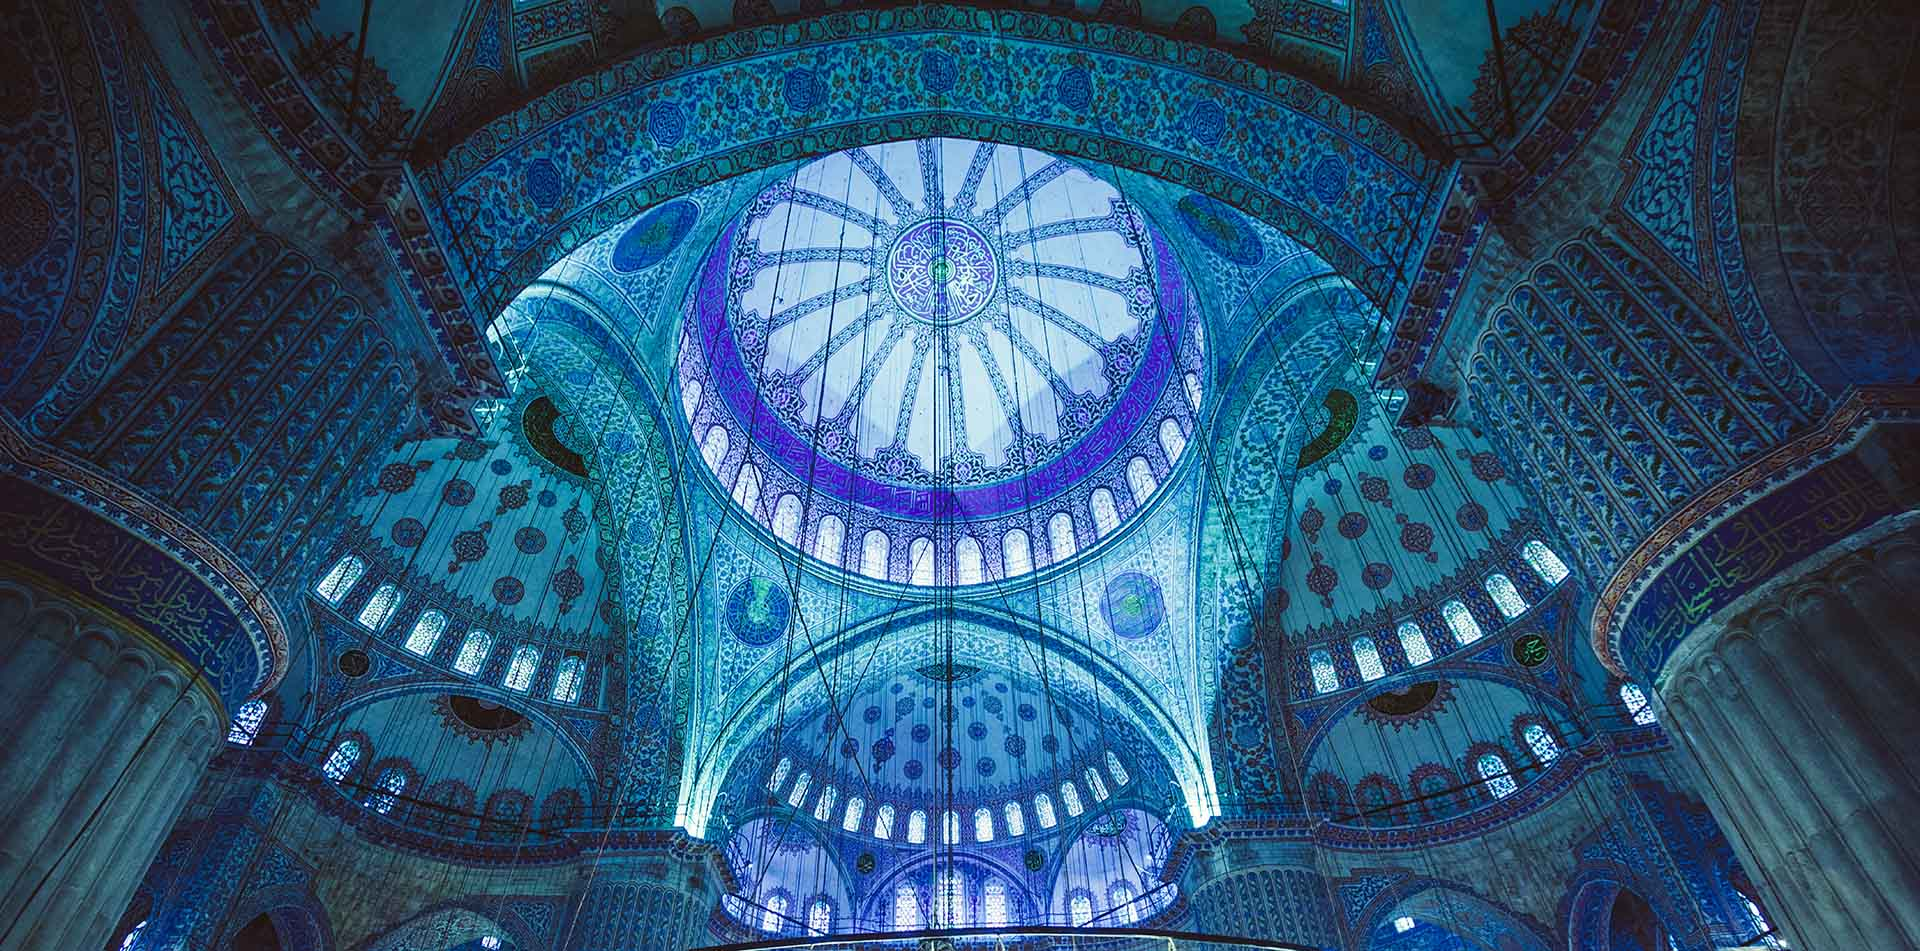 Turkey Istanbul upward interior view of the Blue Mosque dome and atrium - luxury vacation destinations